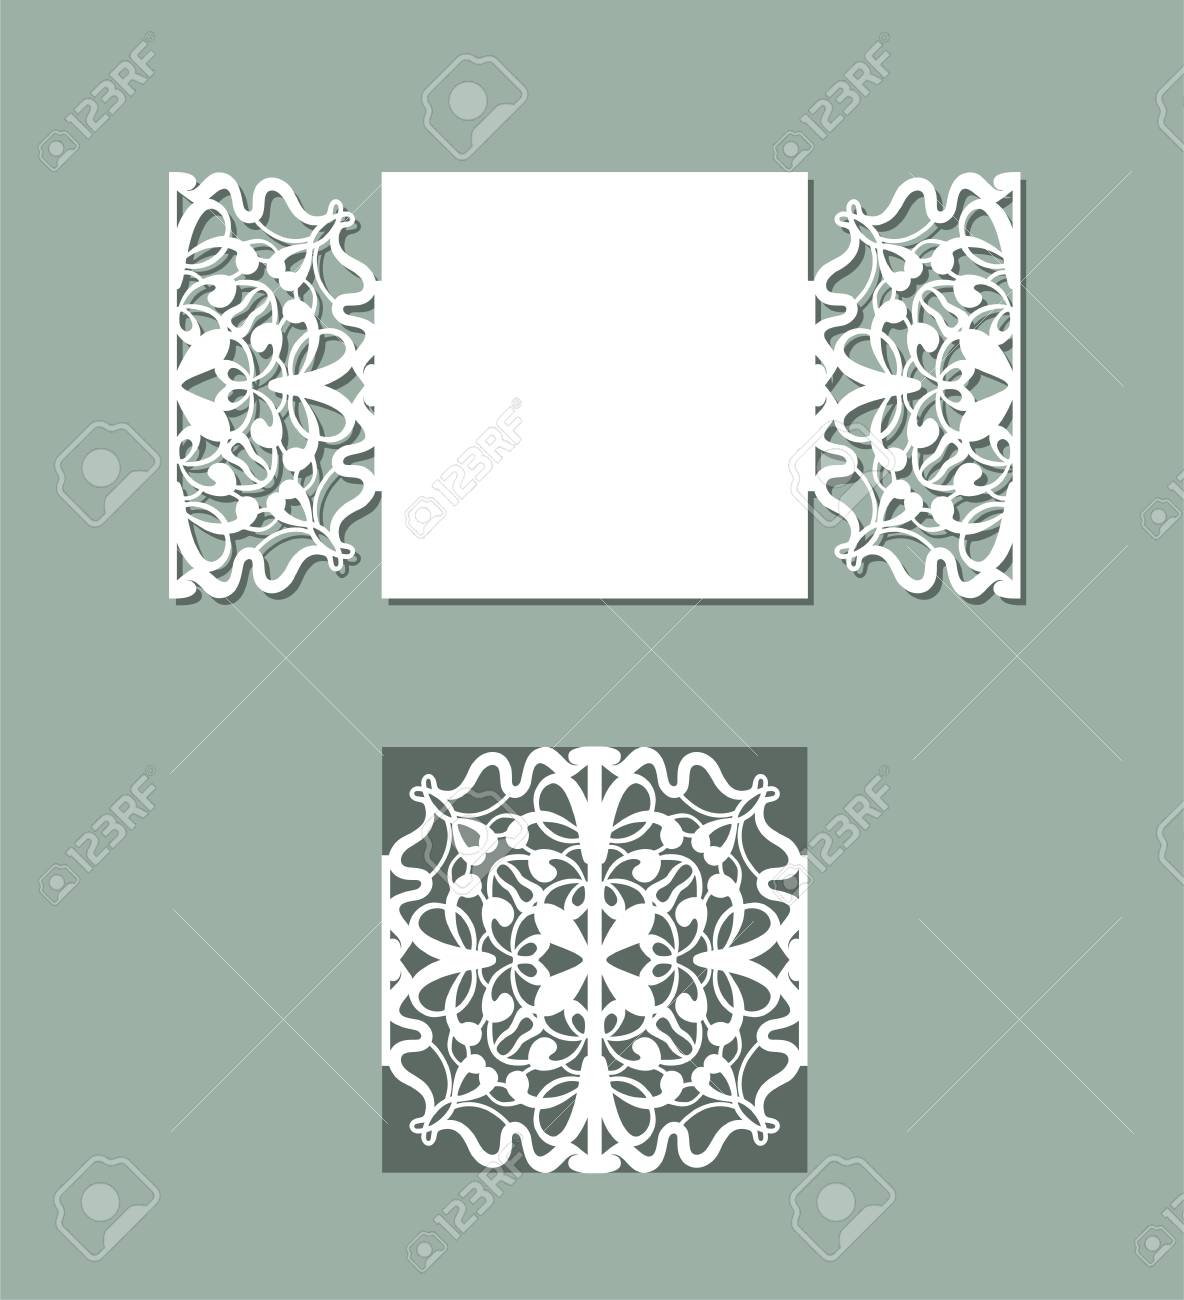 Laser cut panel design. Floral design wall decor. Vector template for cutting. Invitation card. - 125849168